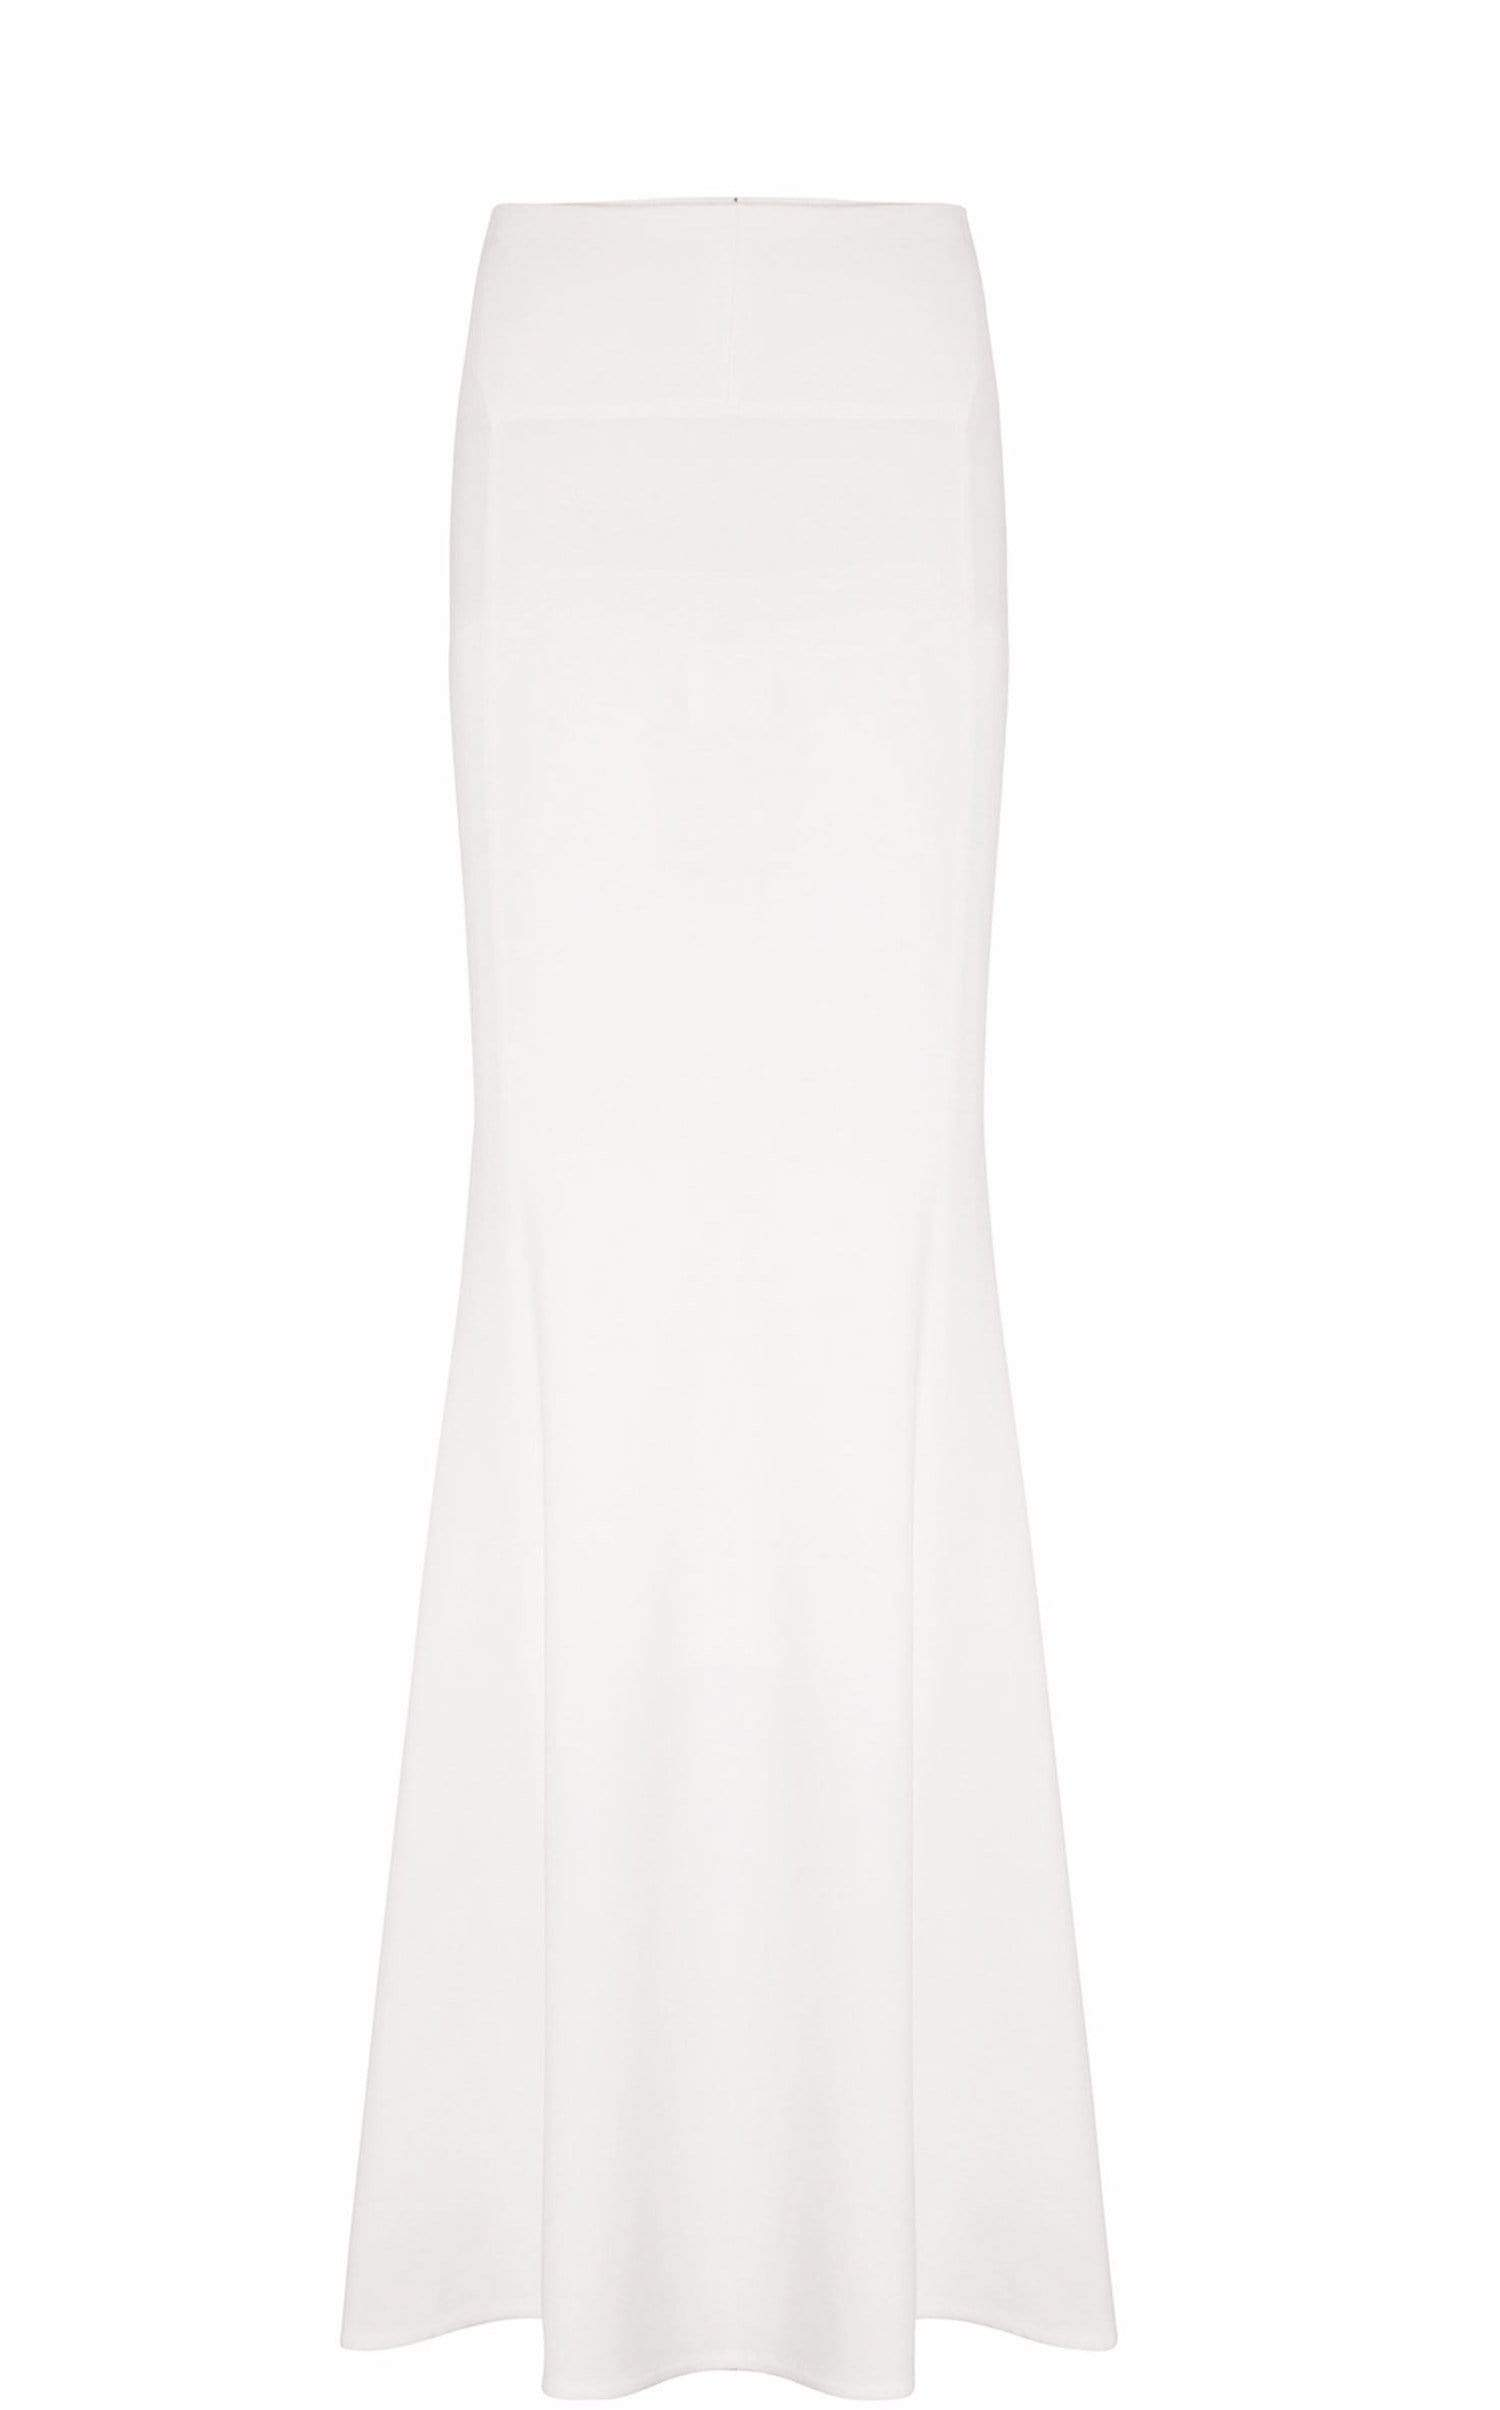 Aries Skirt In White from Roland Mouret